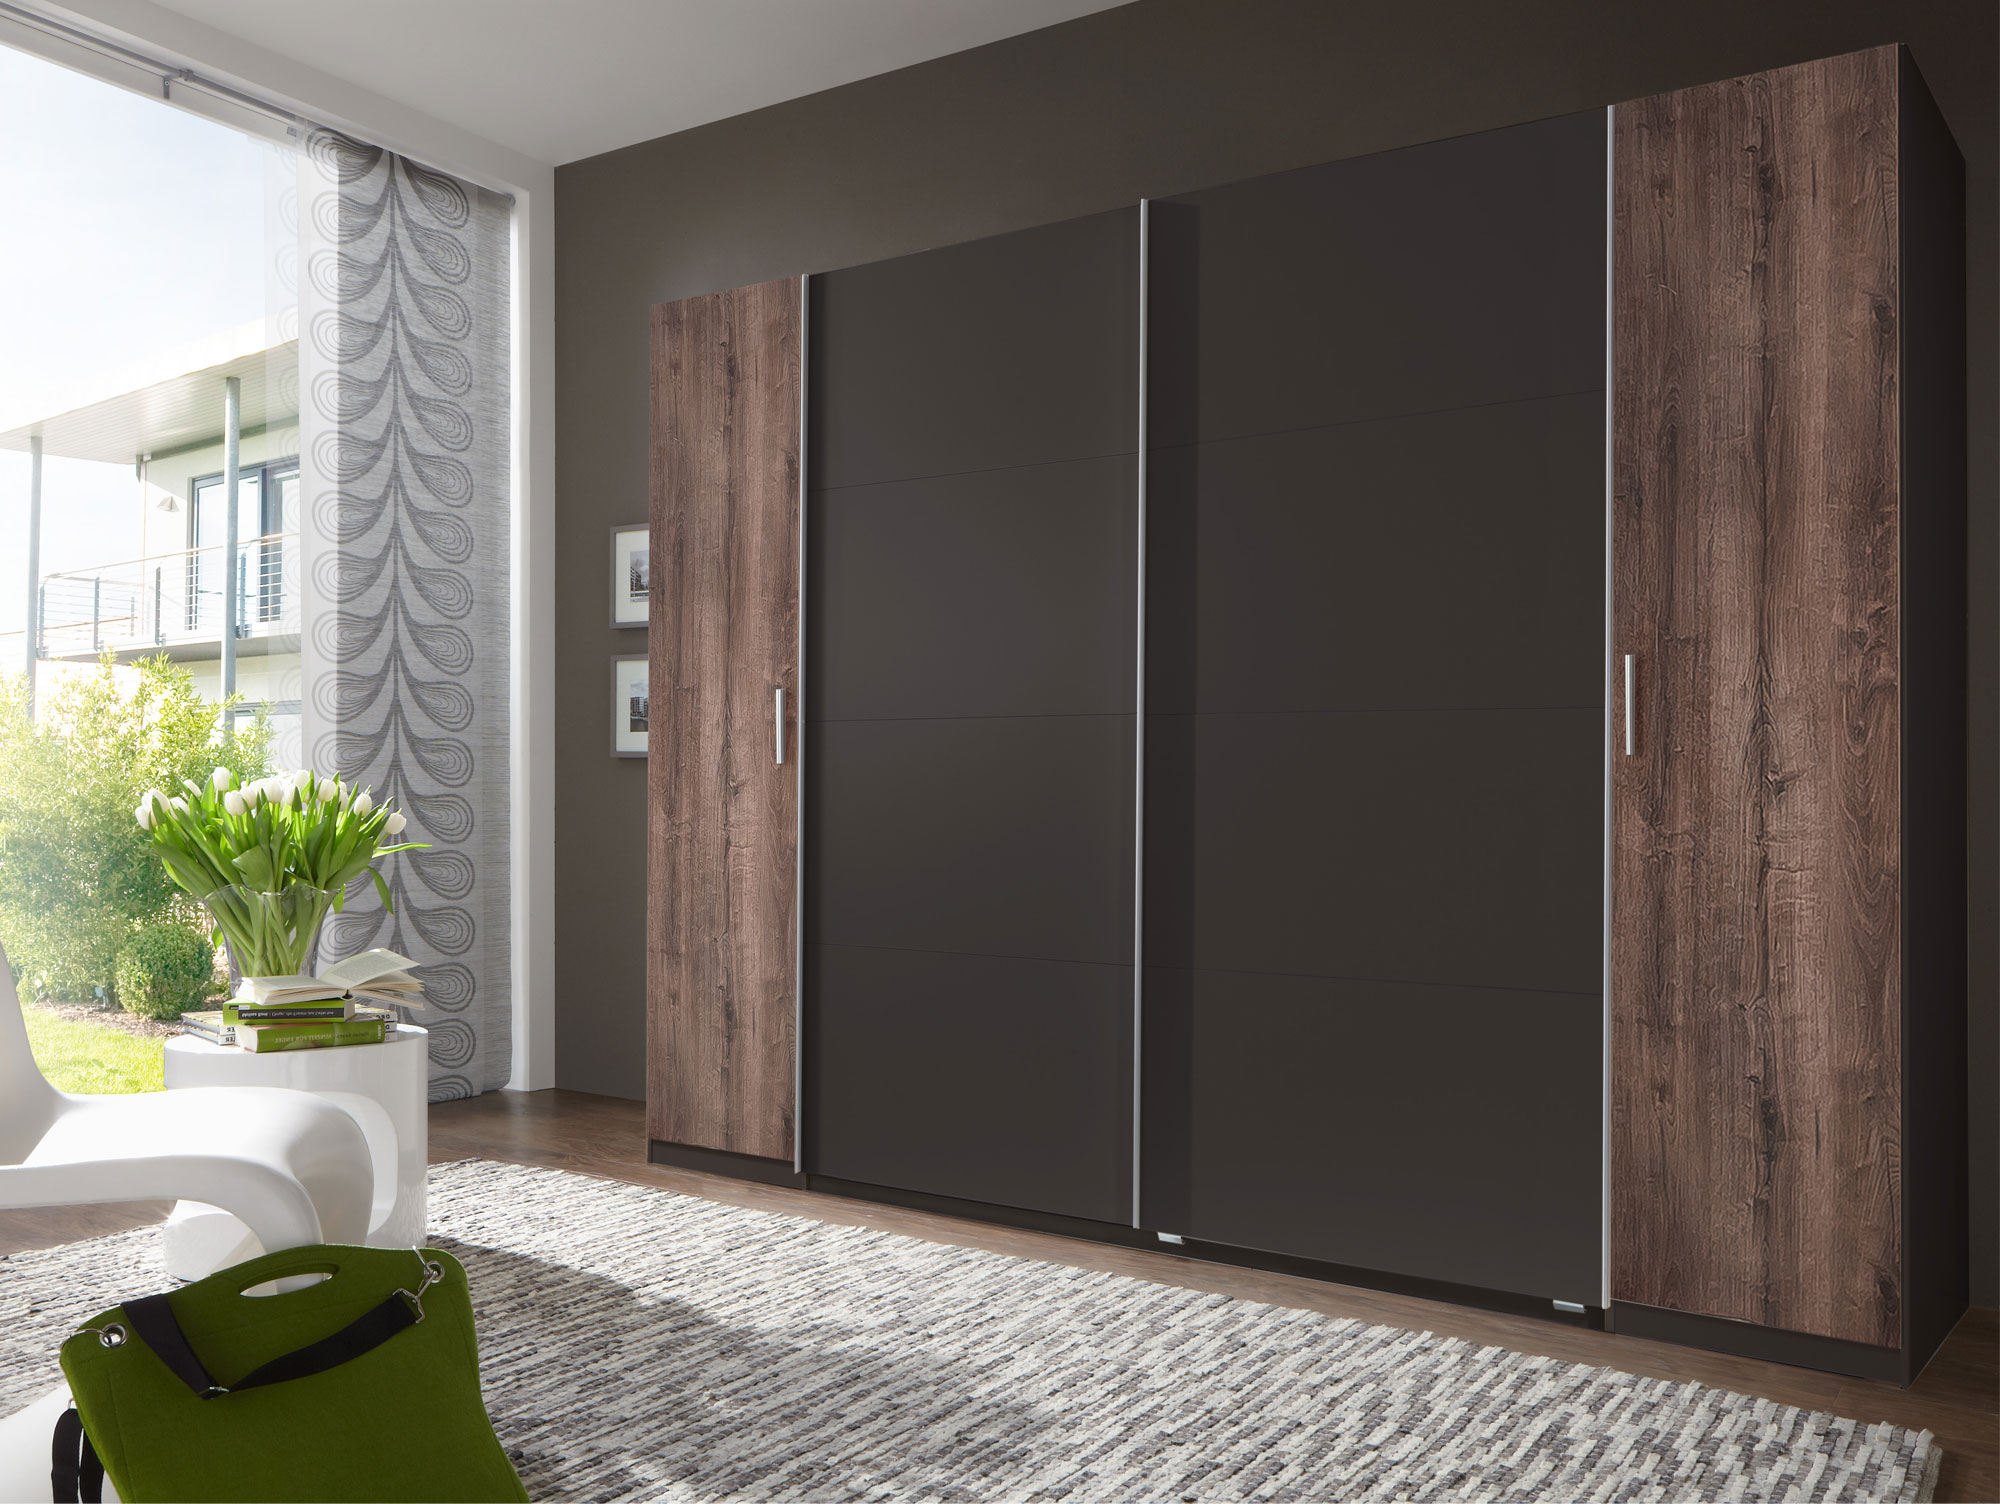 lord dreh schwebet renschrank 270 cm lavafarbig schlammeiche. Black Bedroom Furniture Sets. Home Design Ideas